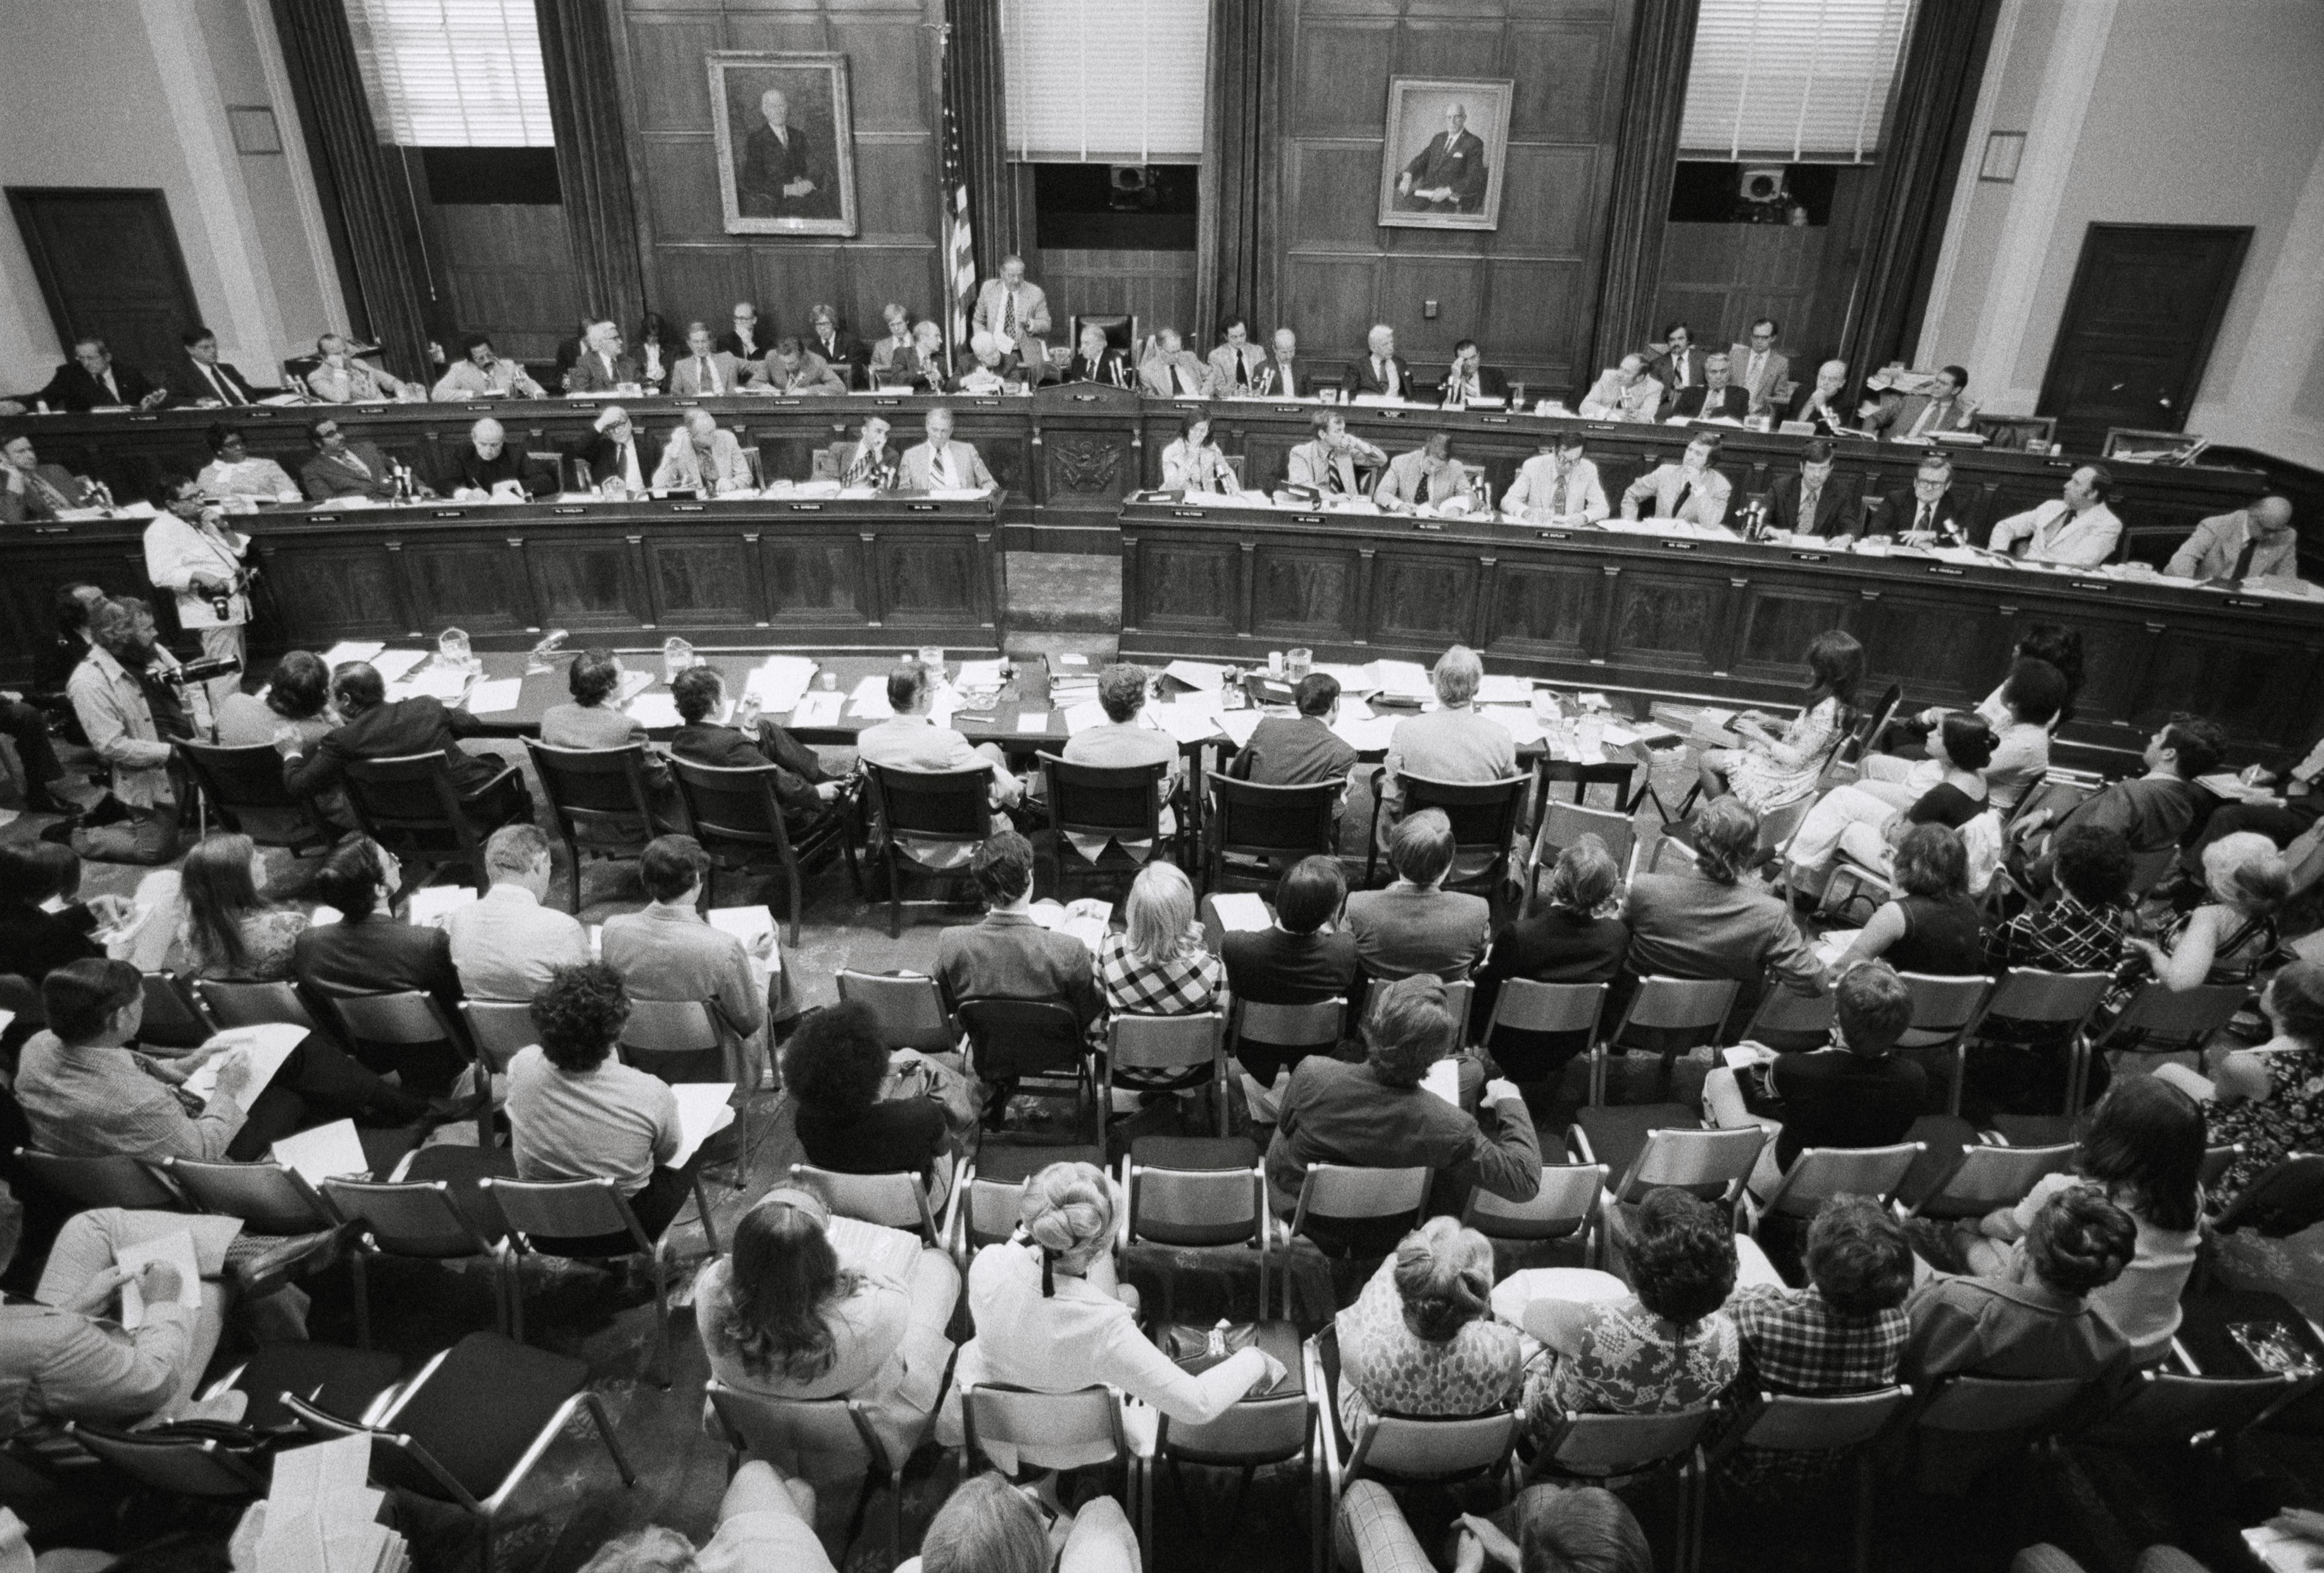 House Judiciary Committee Meeting in 1974